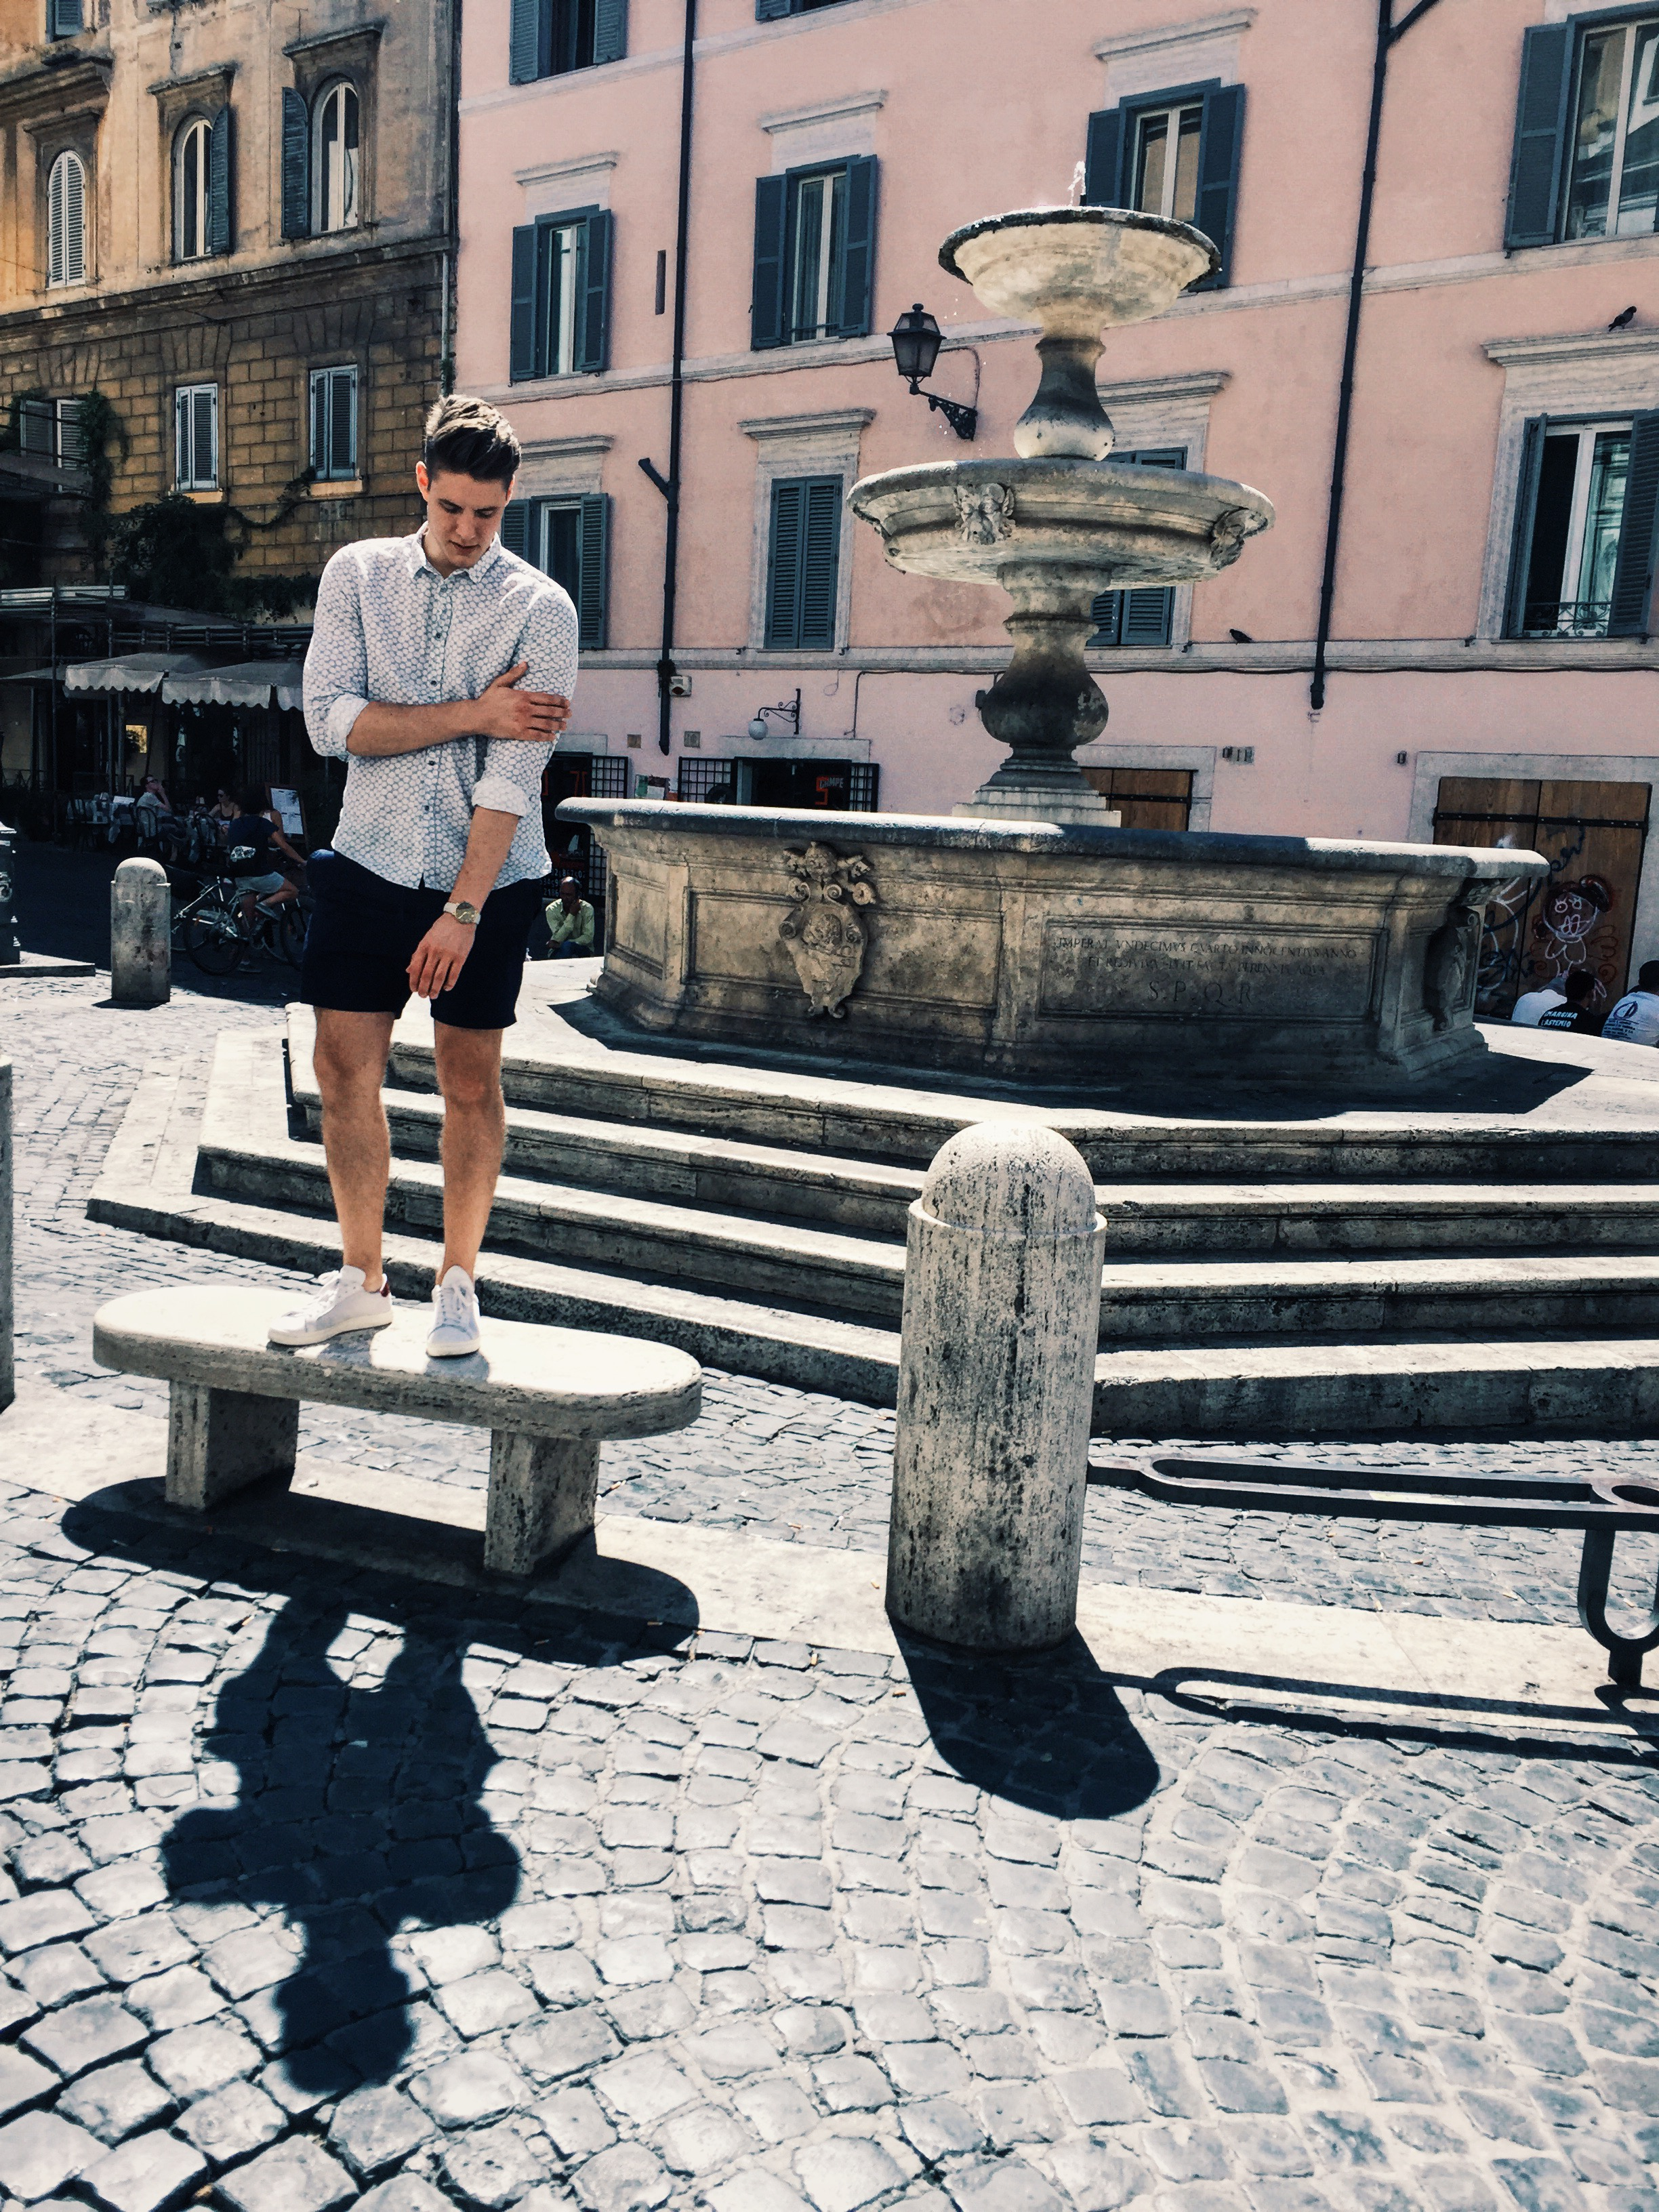 Enjoying Rome with my Andersson & Young